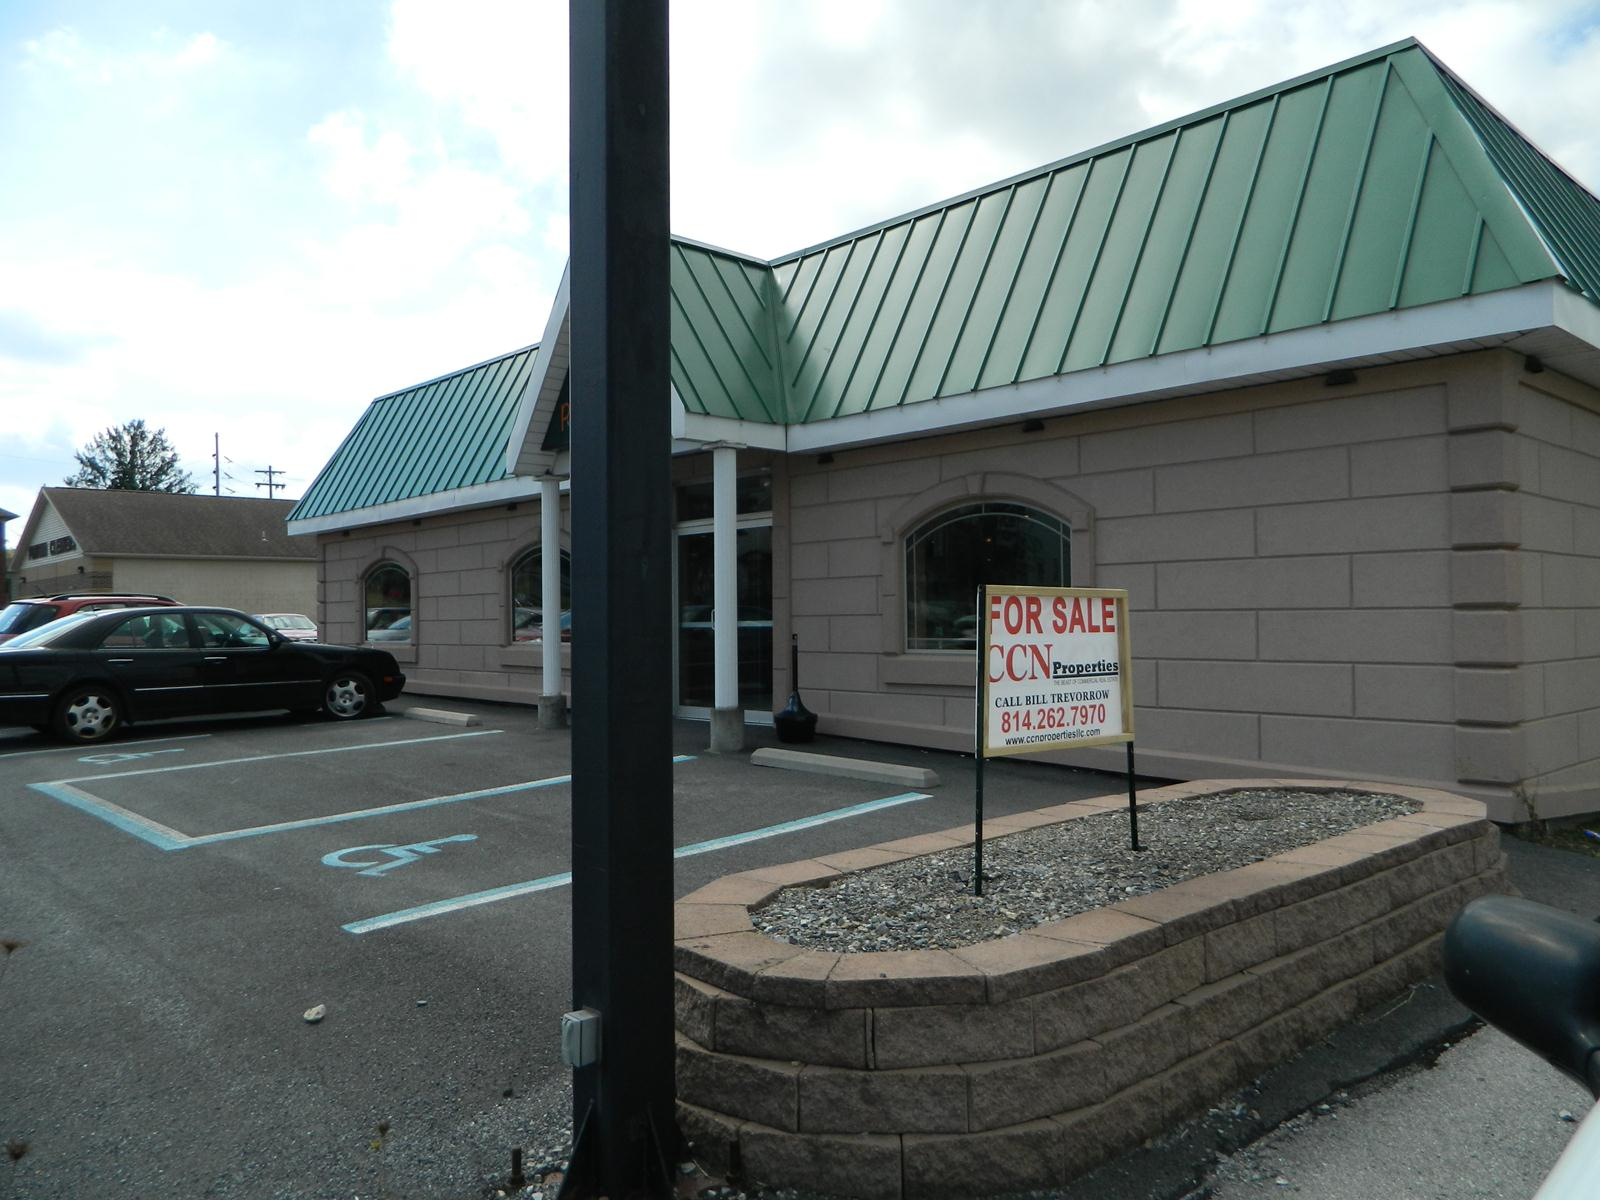 1222-1302 Logan Blvd. Altoona 16602 - Price $650,000